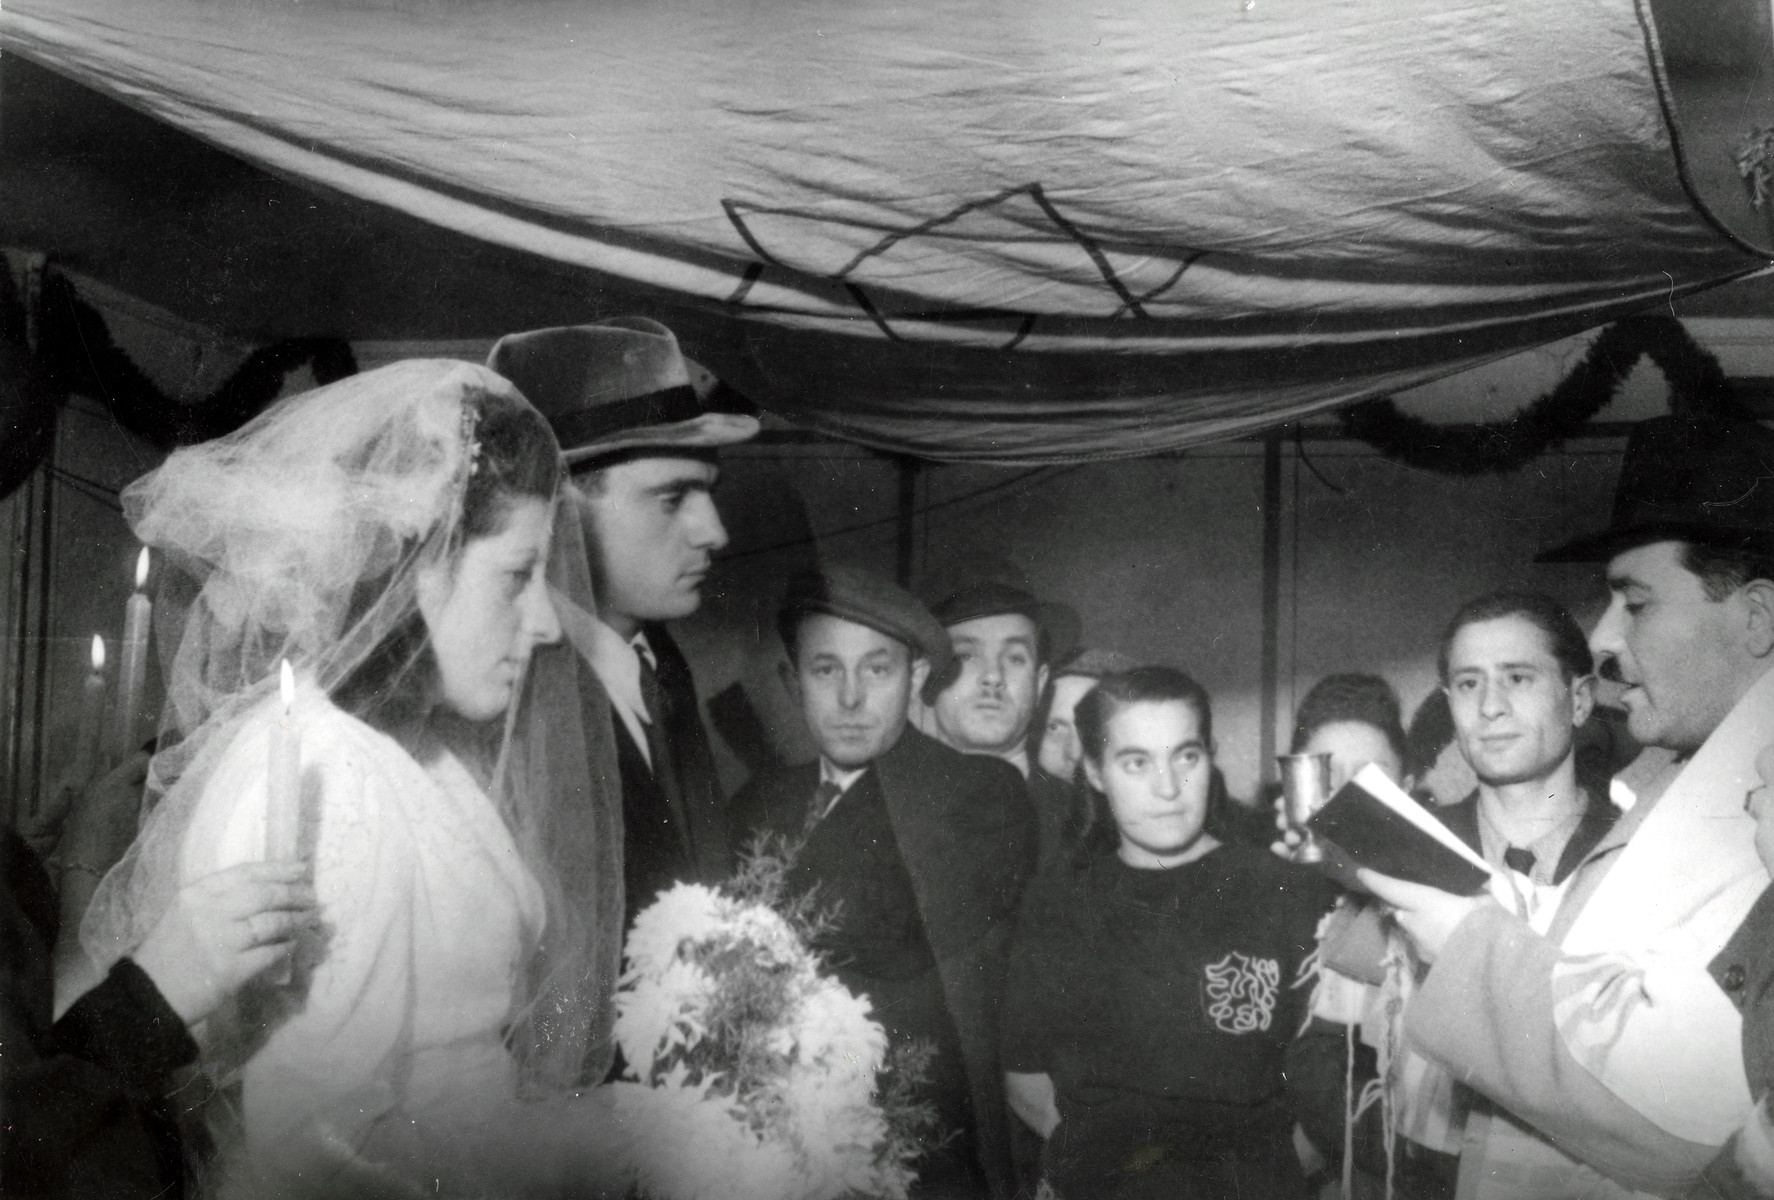 Rabbi Yehuda Lipot Meisels conducts a wedding in the Pocking displaced persons camp.